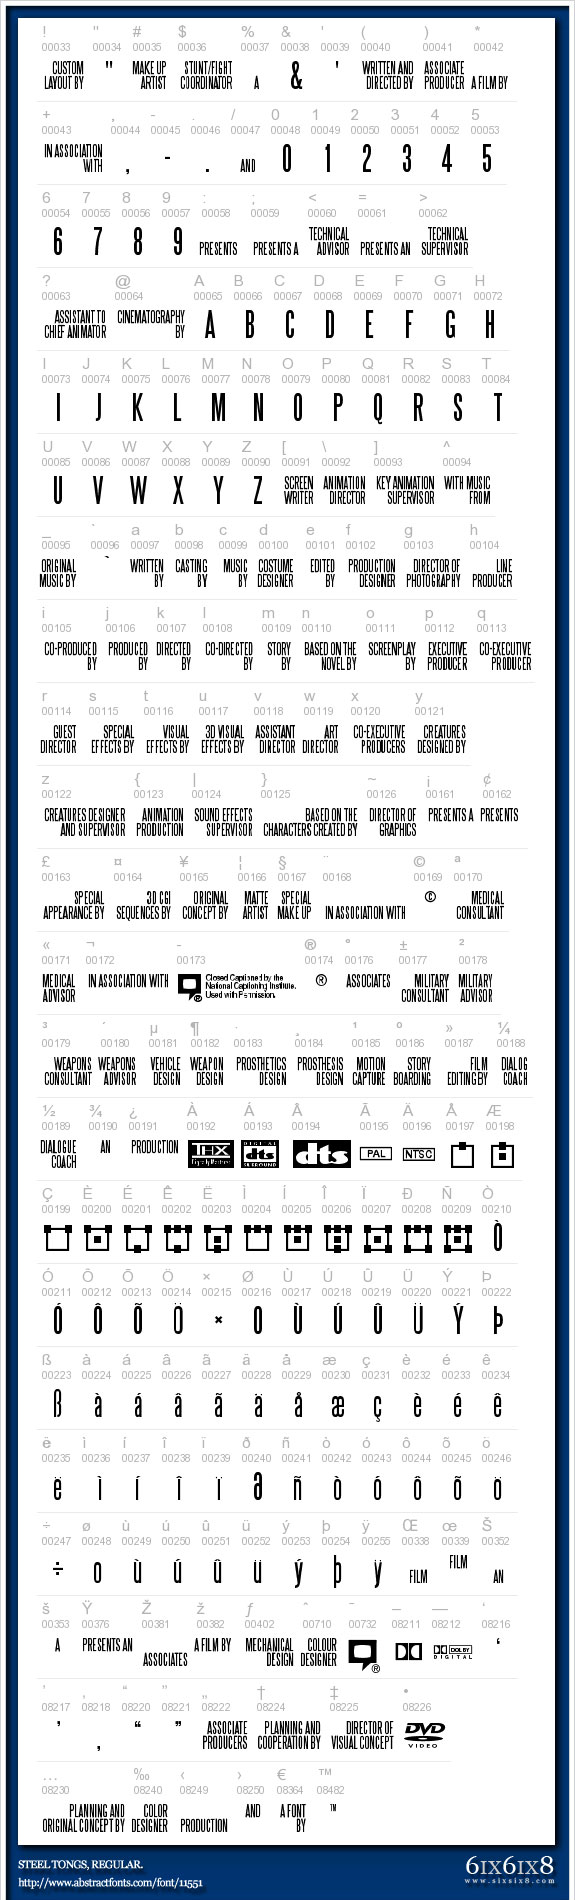 12 Movie Poster Font Images